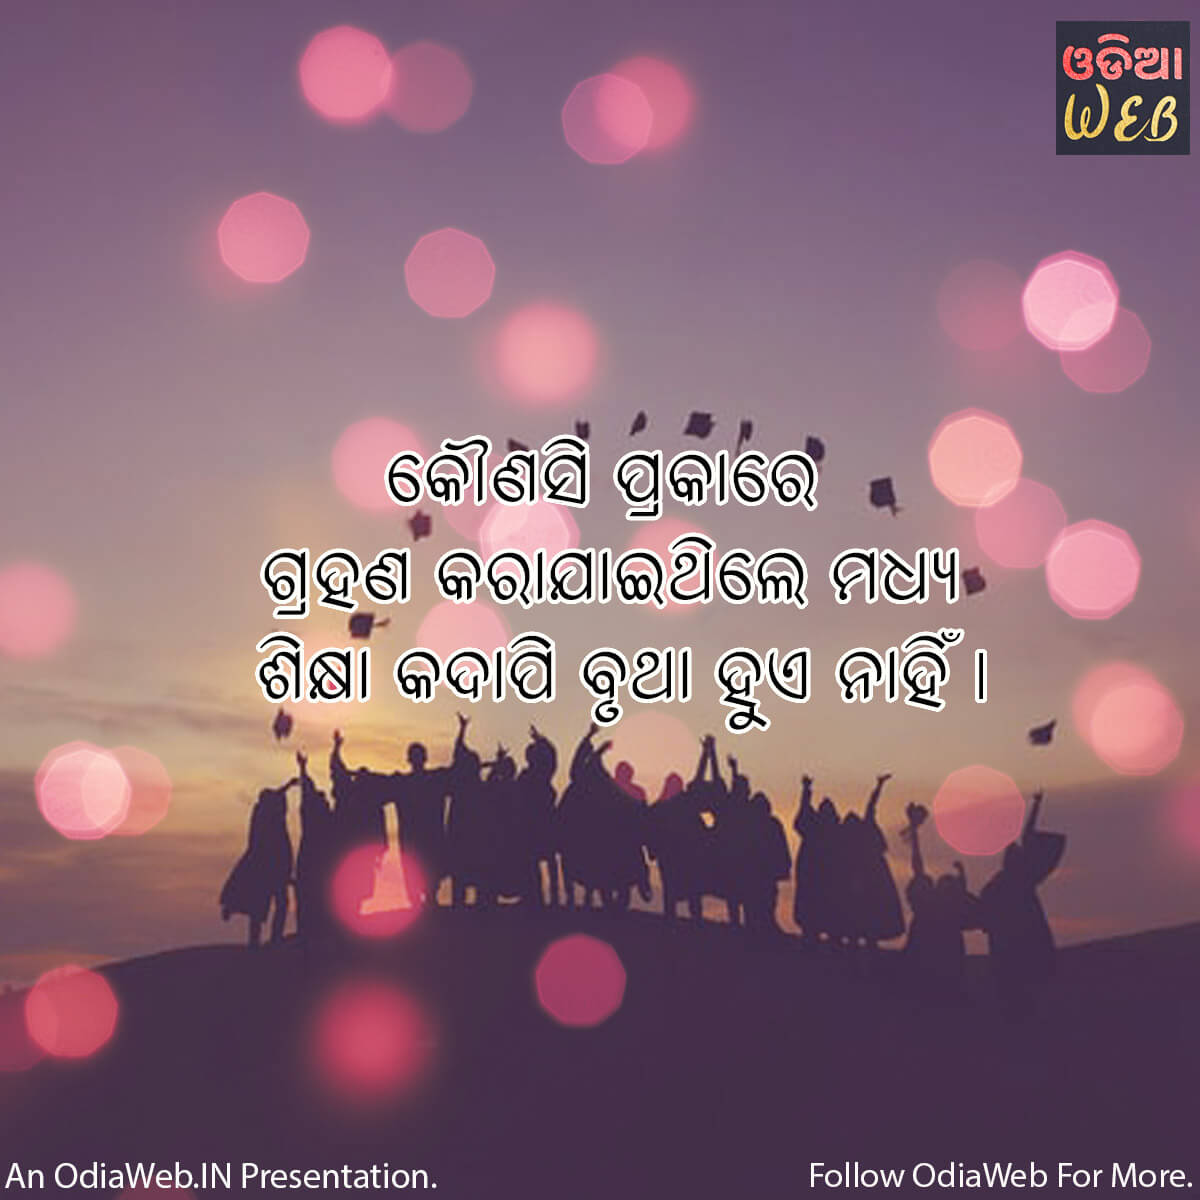 Odia learning quotes